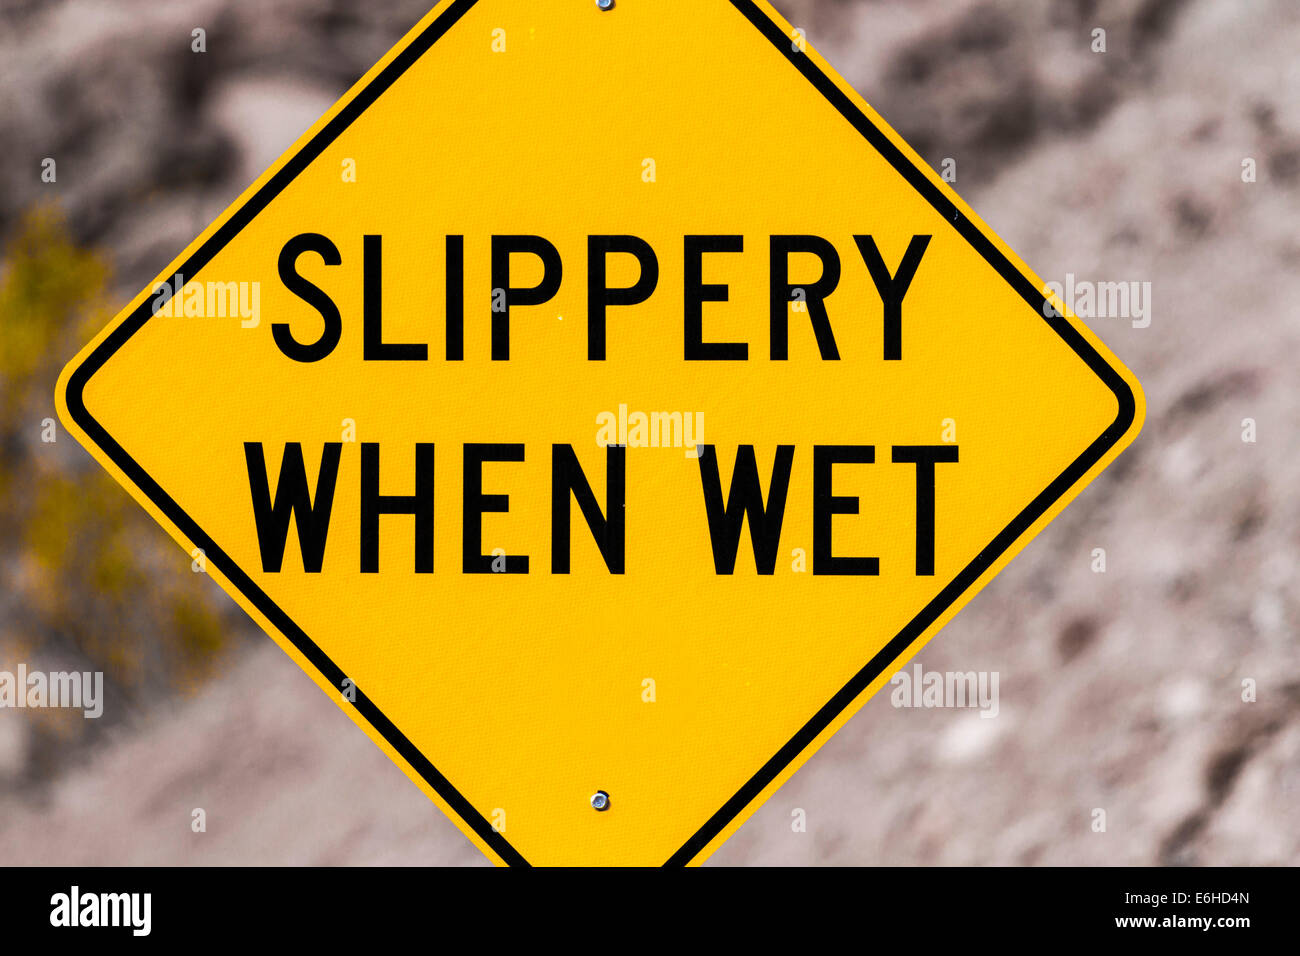 Sign warns that road ahead is 'Slippery When Wet' - Stock Image